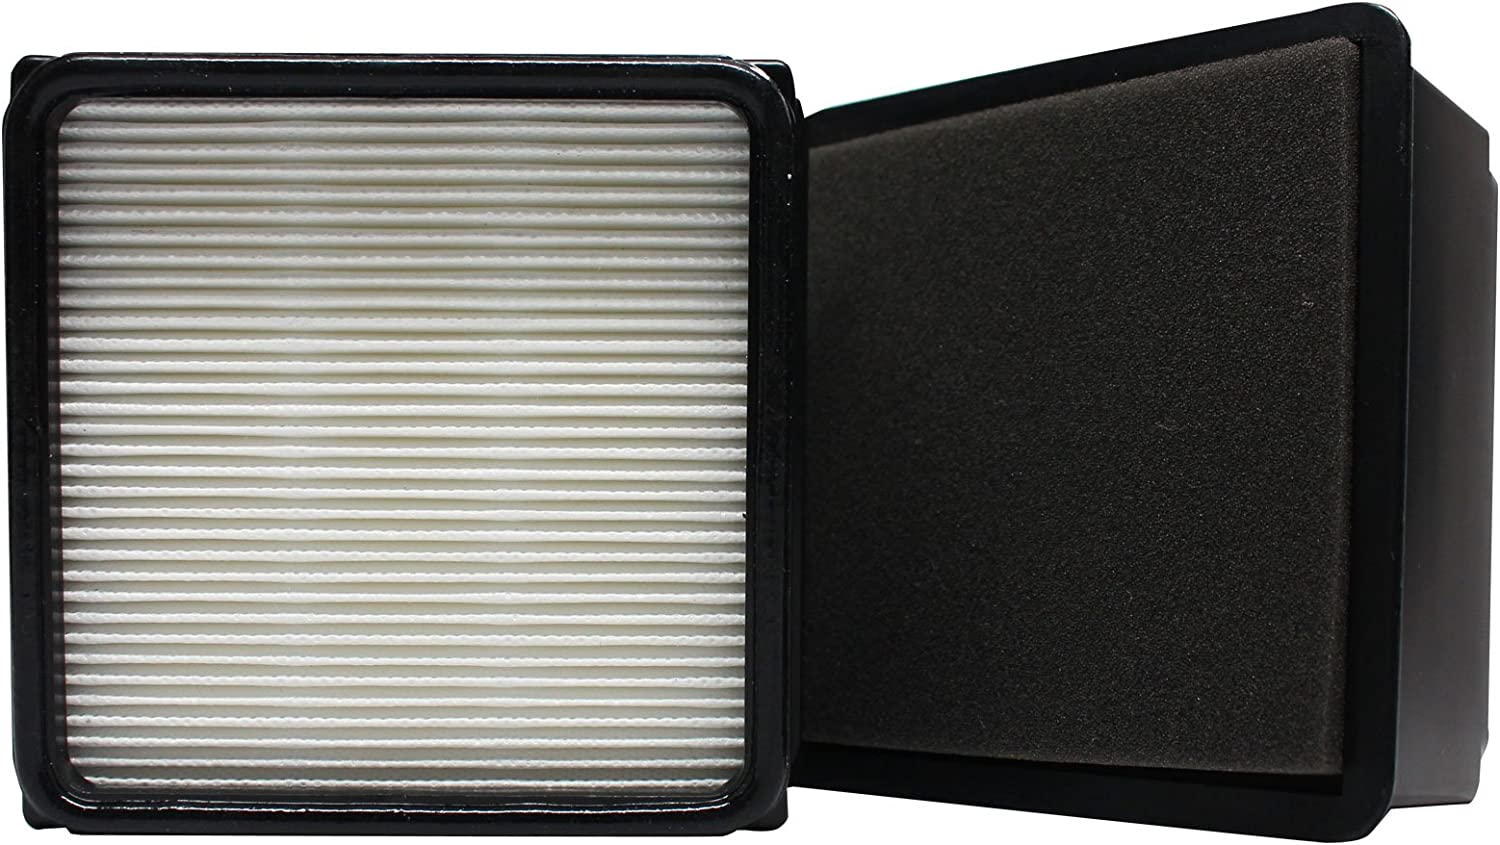 2-Pack Replacement for Dirt Devil Breeze Cyclonic Bagless Upright UD70105B Vacuum HEPA Filter and Foam Filter Insert - Compatible with Dirt Devil 304708001, F59, F66 HEPA Filter and Foam Filter Insert